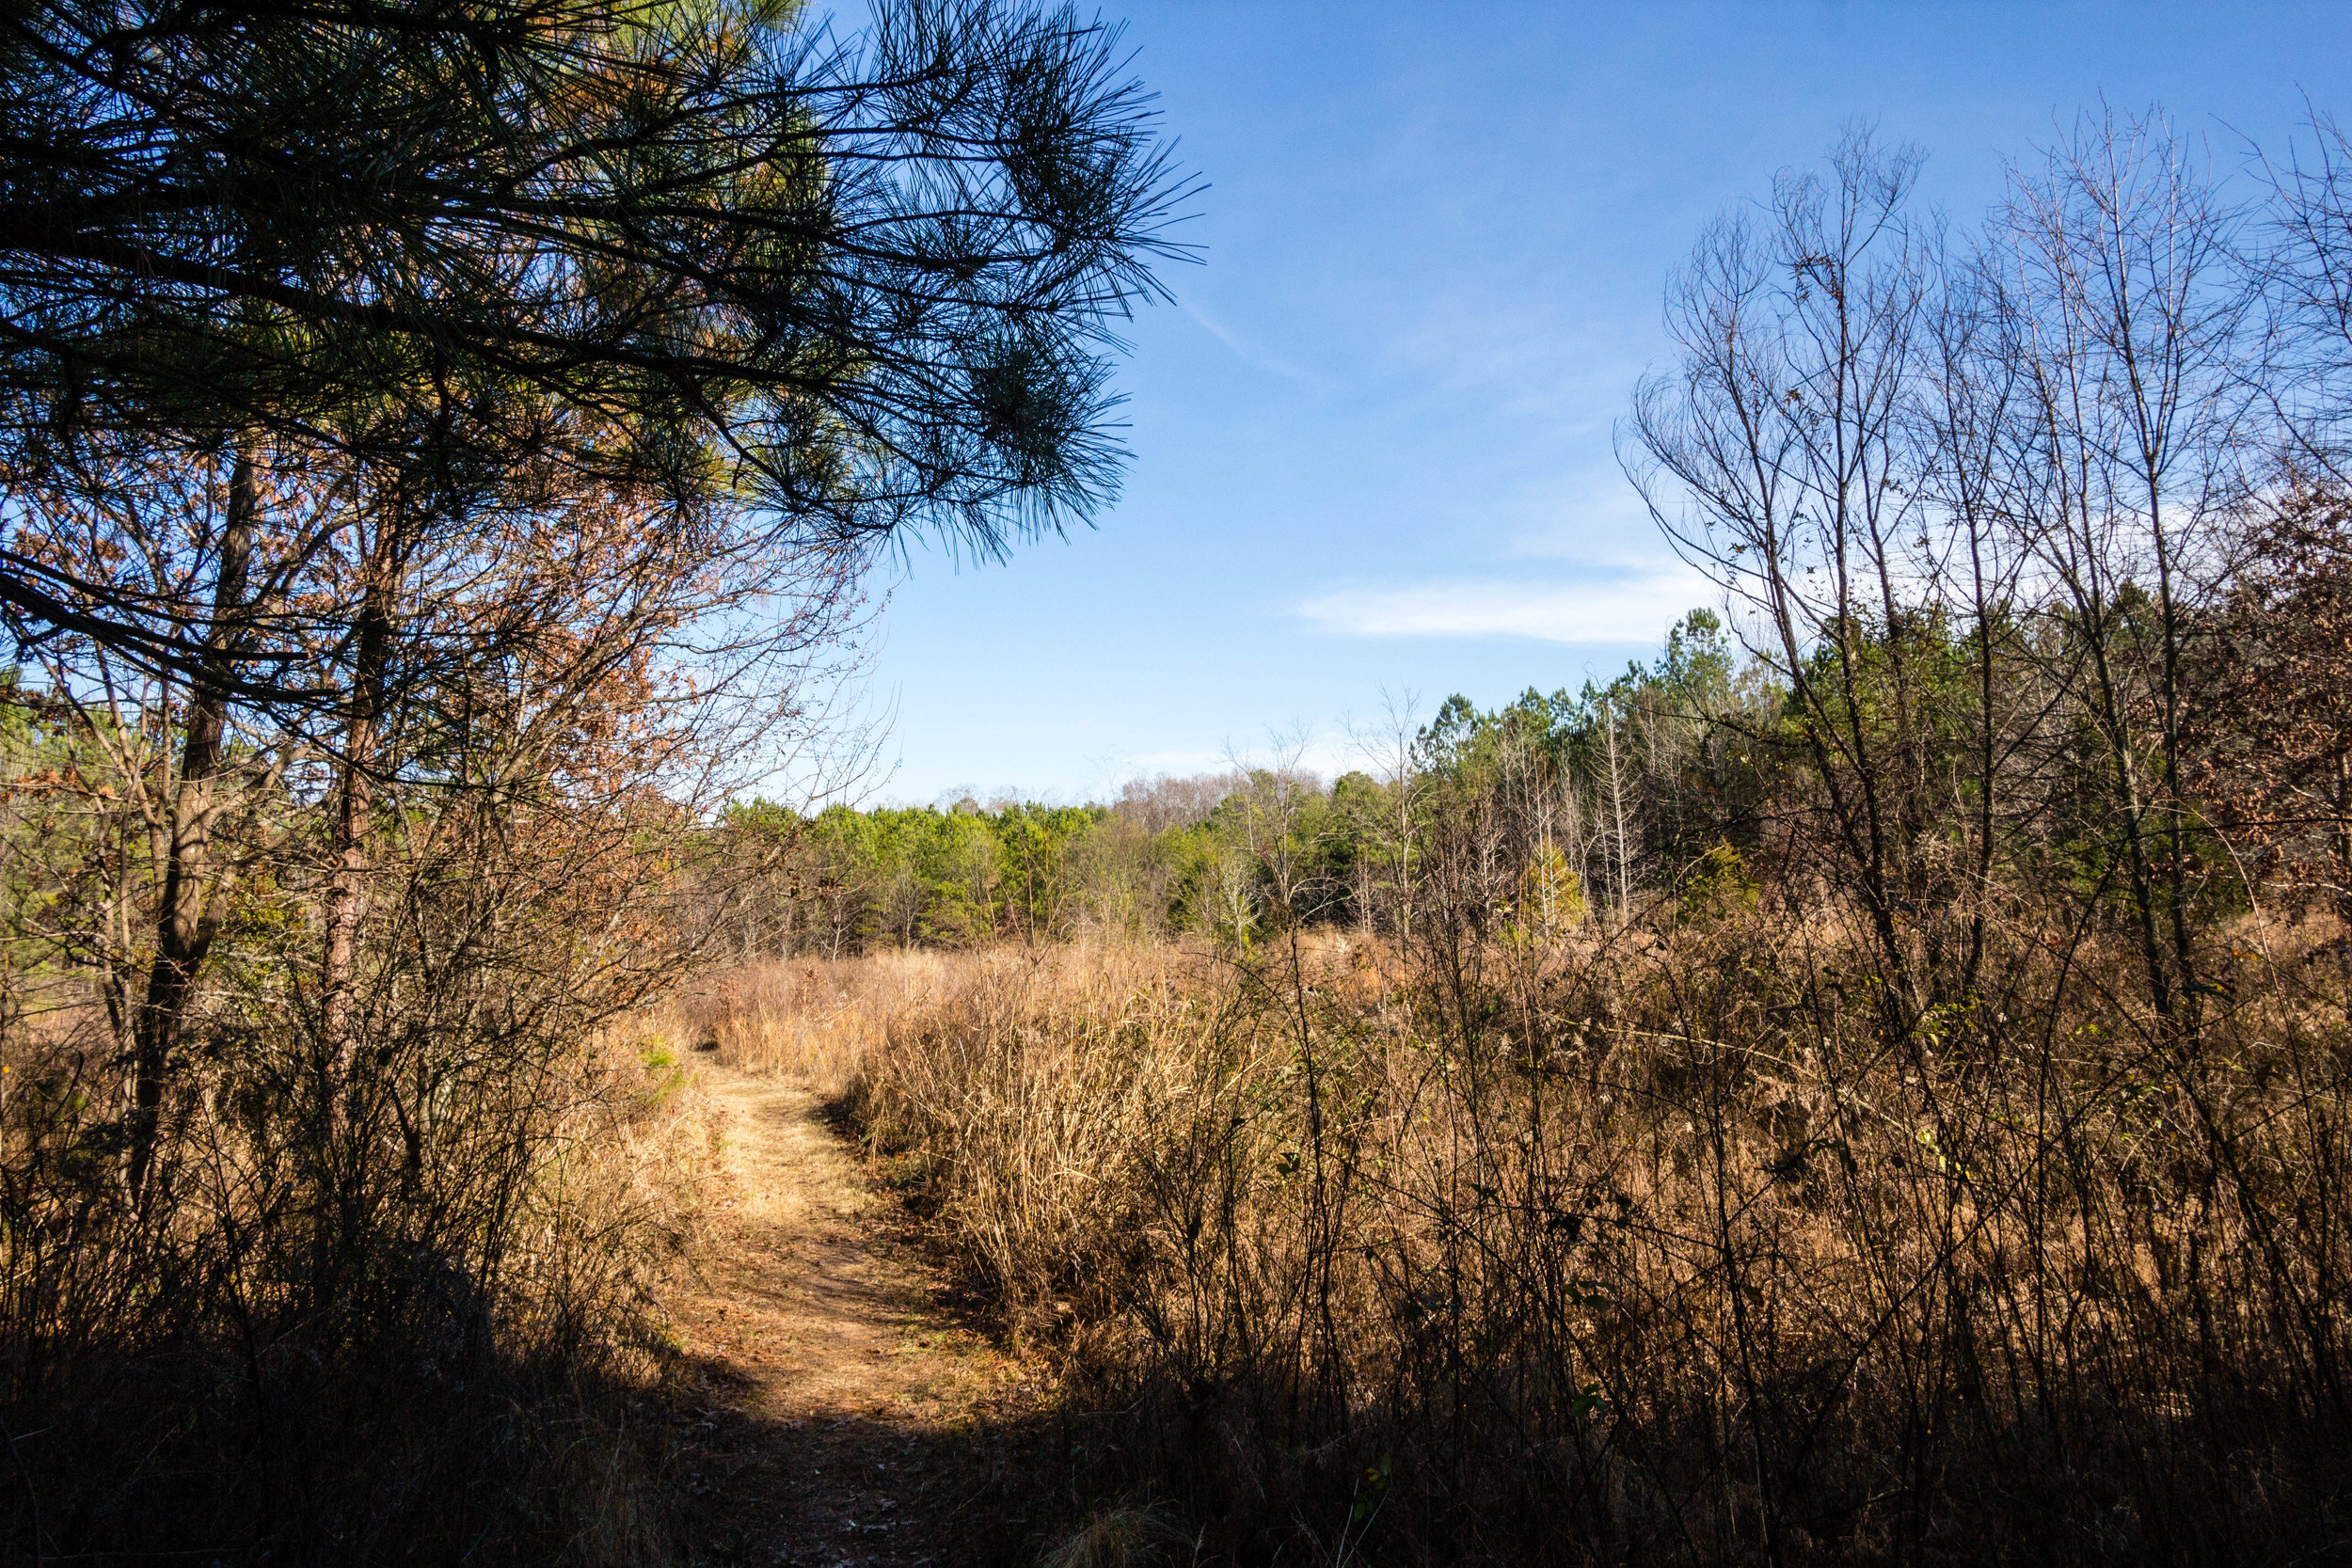 Songbird Habitat Trail, January 5, 2017